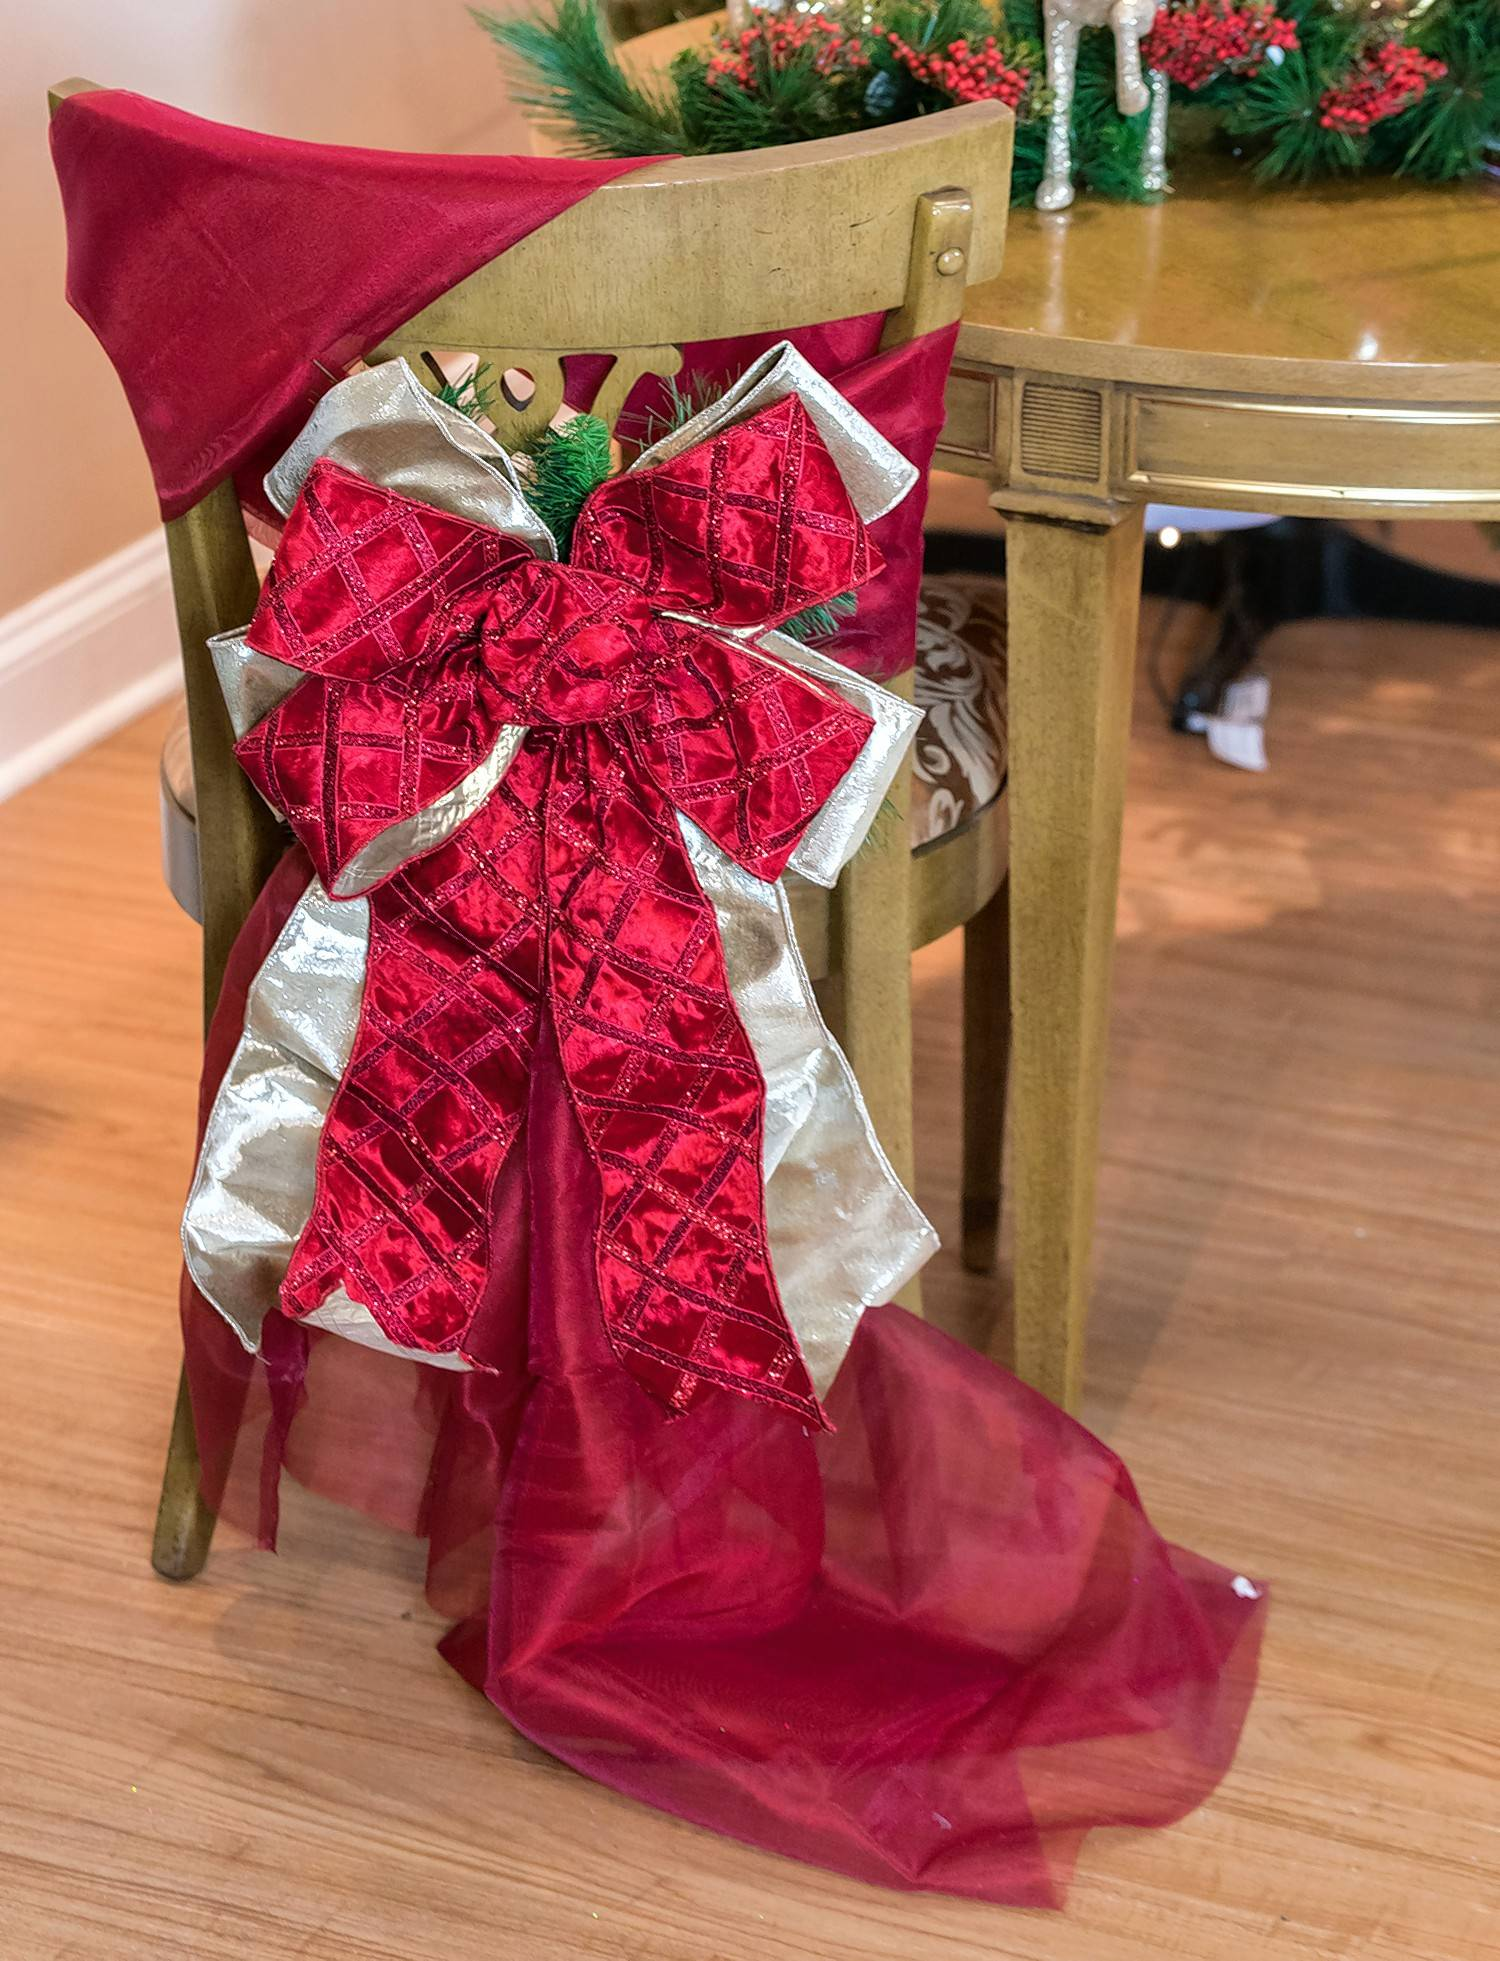 A bow tied around the chair back will take your decorations to the next level.